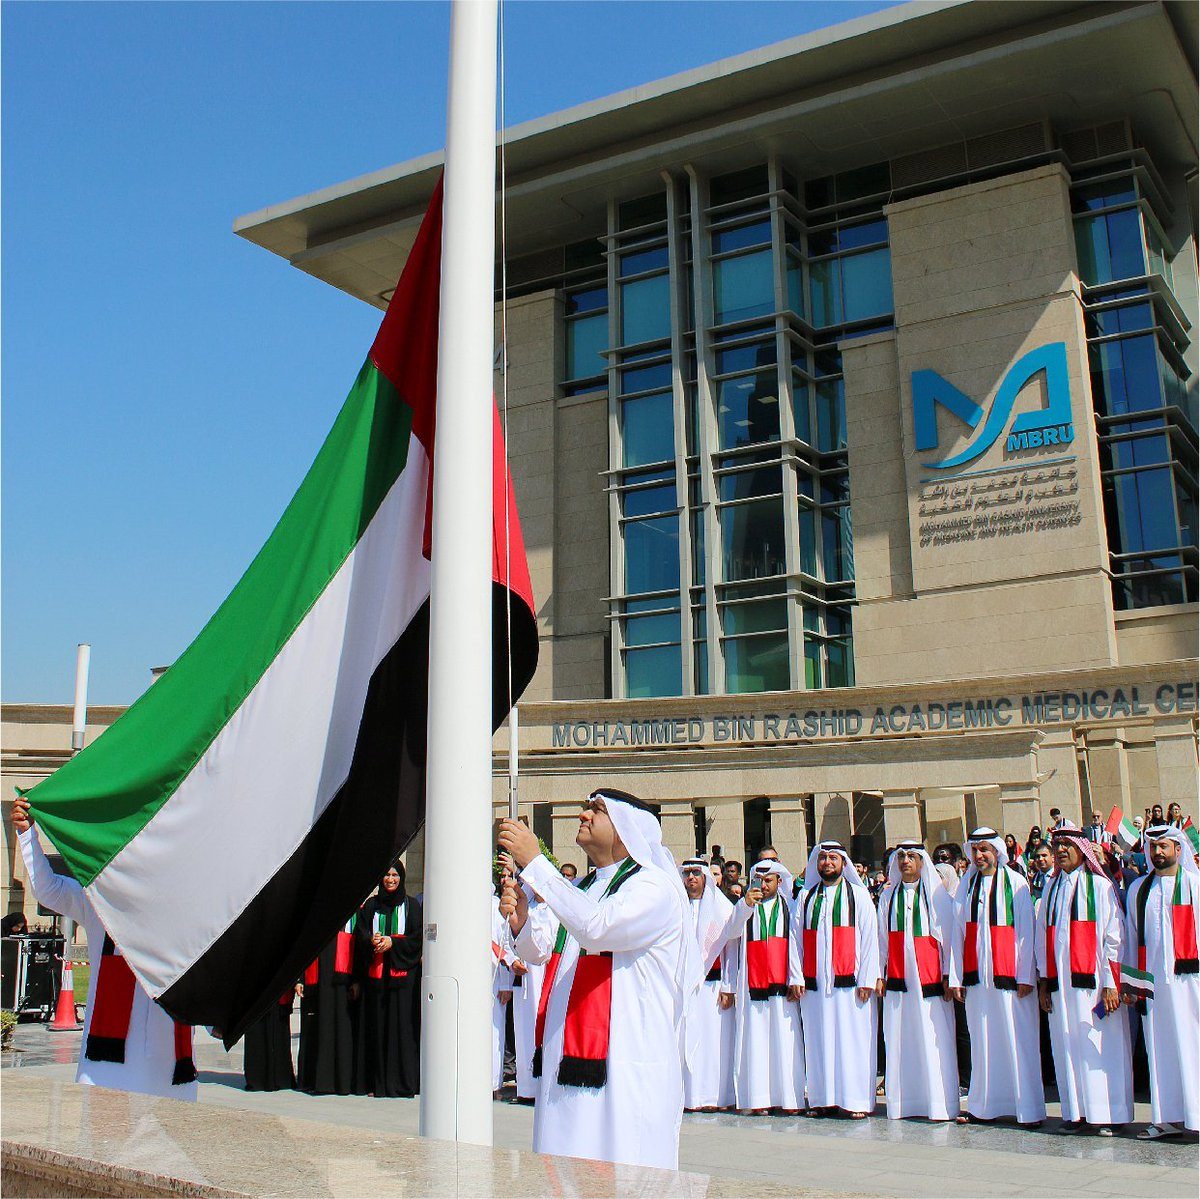 A symbol of unity, sovereignty and pride - This flag day, let's 'Raise it High, Raise it Proud'! @MBRUniversity #CommunityOfChoice #DHCC #Healthcare #Wellness #PatientSafety #Innovation #AlliedHealthcare #Dubai #MyDubai #DXB #HealthcareDestination #FlagDay #UAEpic.twitter.com/yCBNIJpzss